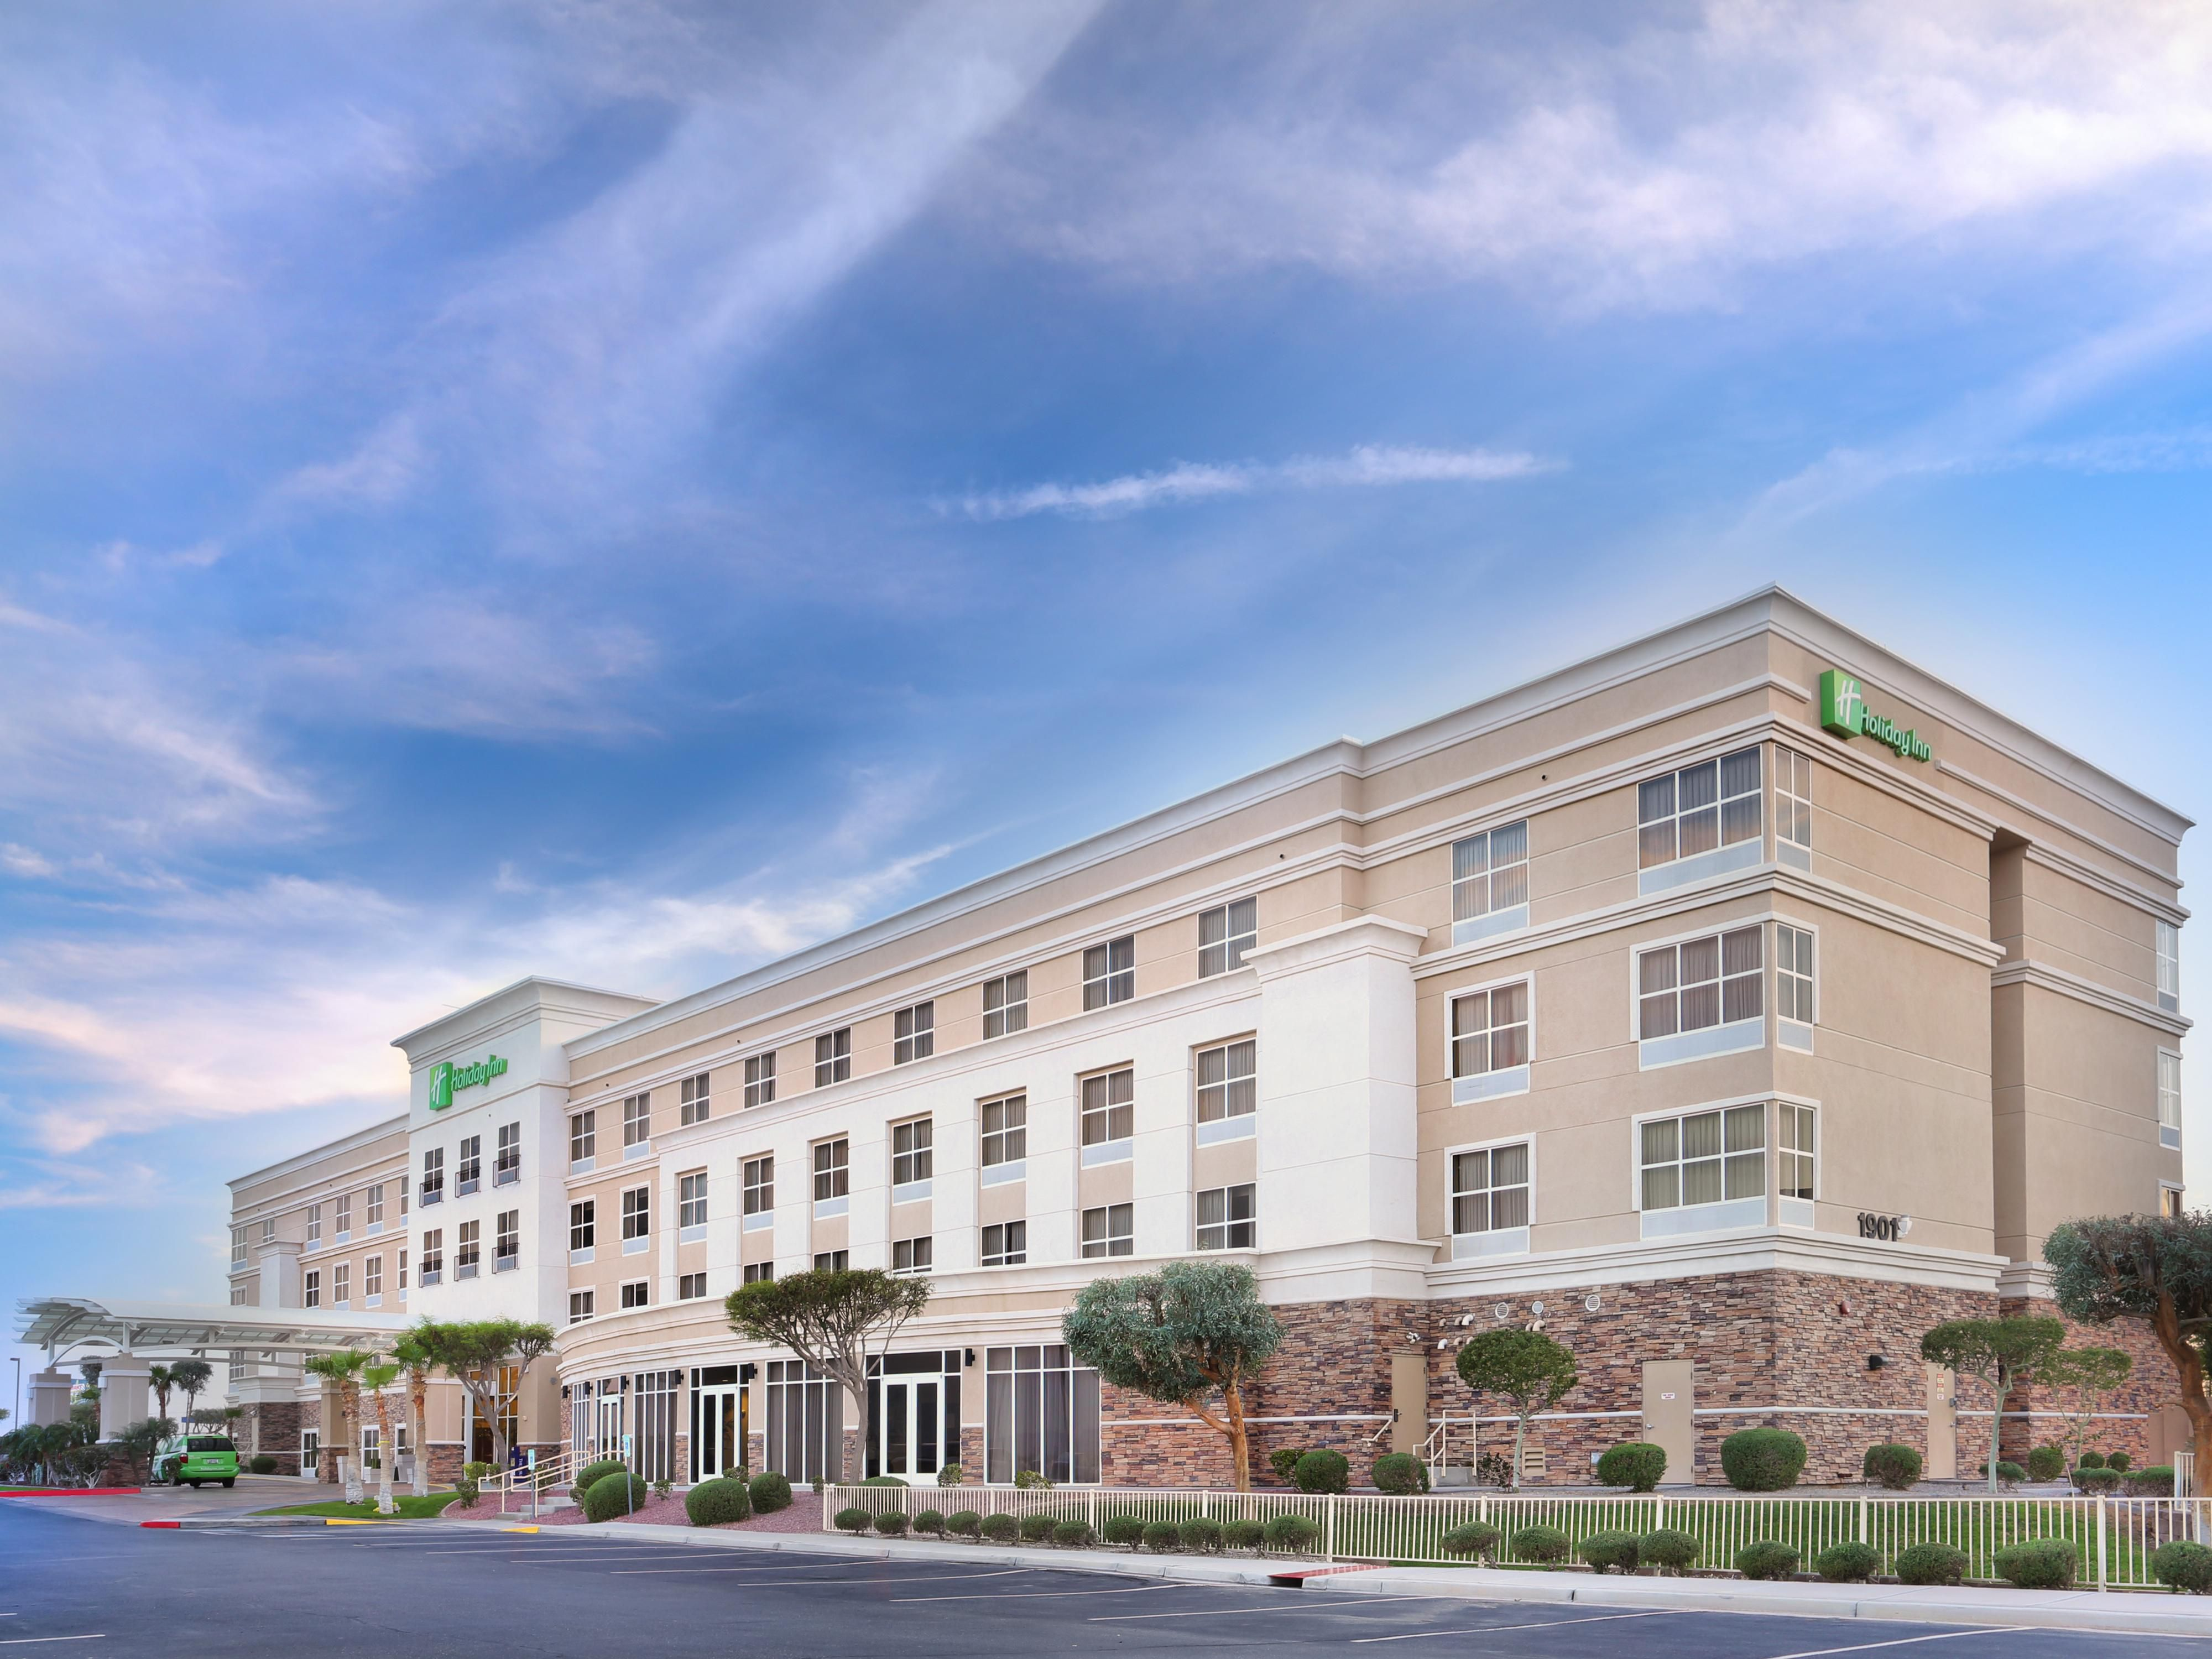 Welcome to the Holiday Inn Yuma!